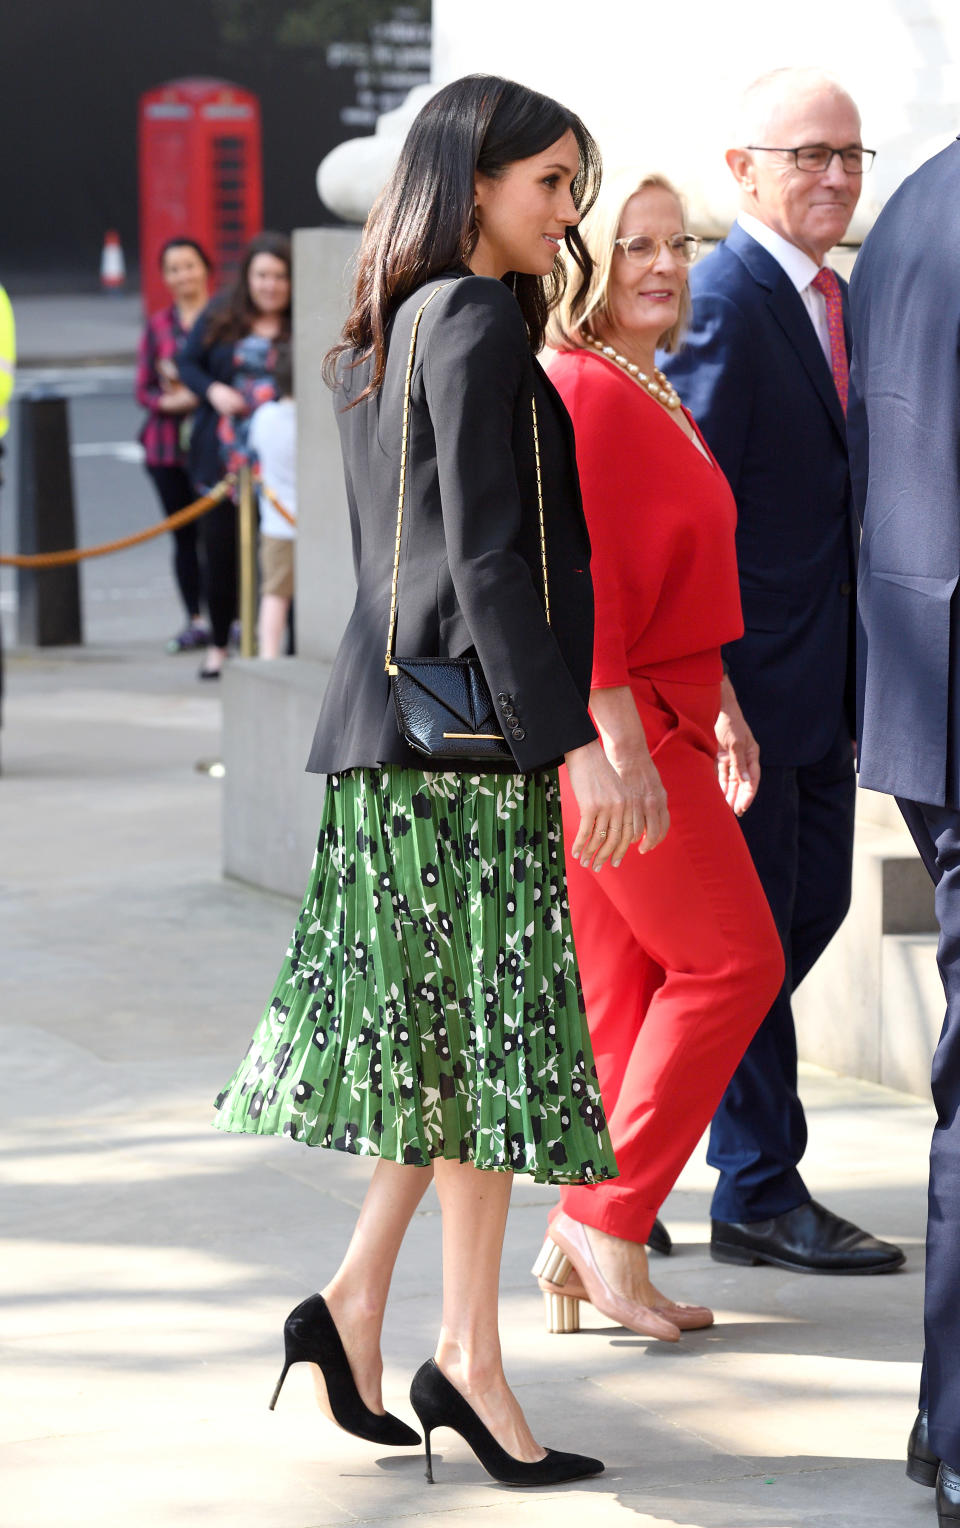 <p>She paired the dress with some other fashion favourites: a chic $2,000 Alexander McQueen blazer, a Roland Mouret crossbody bank and Manolo Blahnik suede pumps. </p>